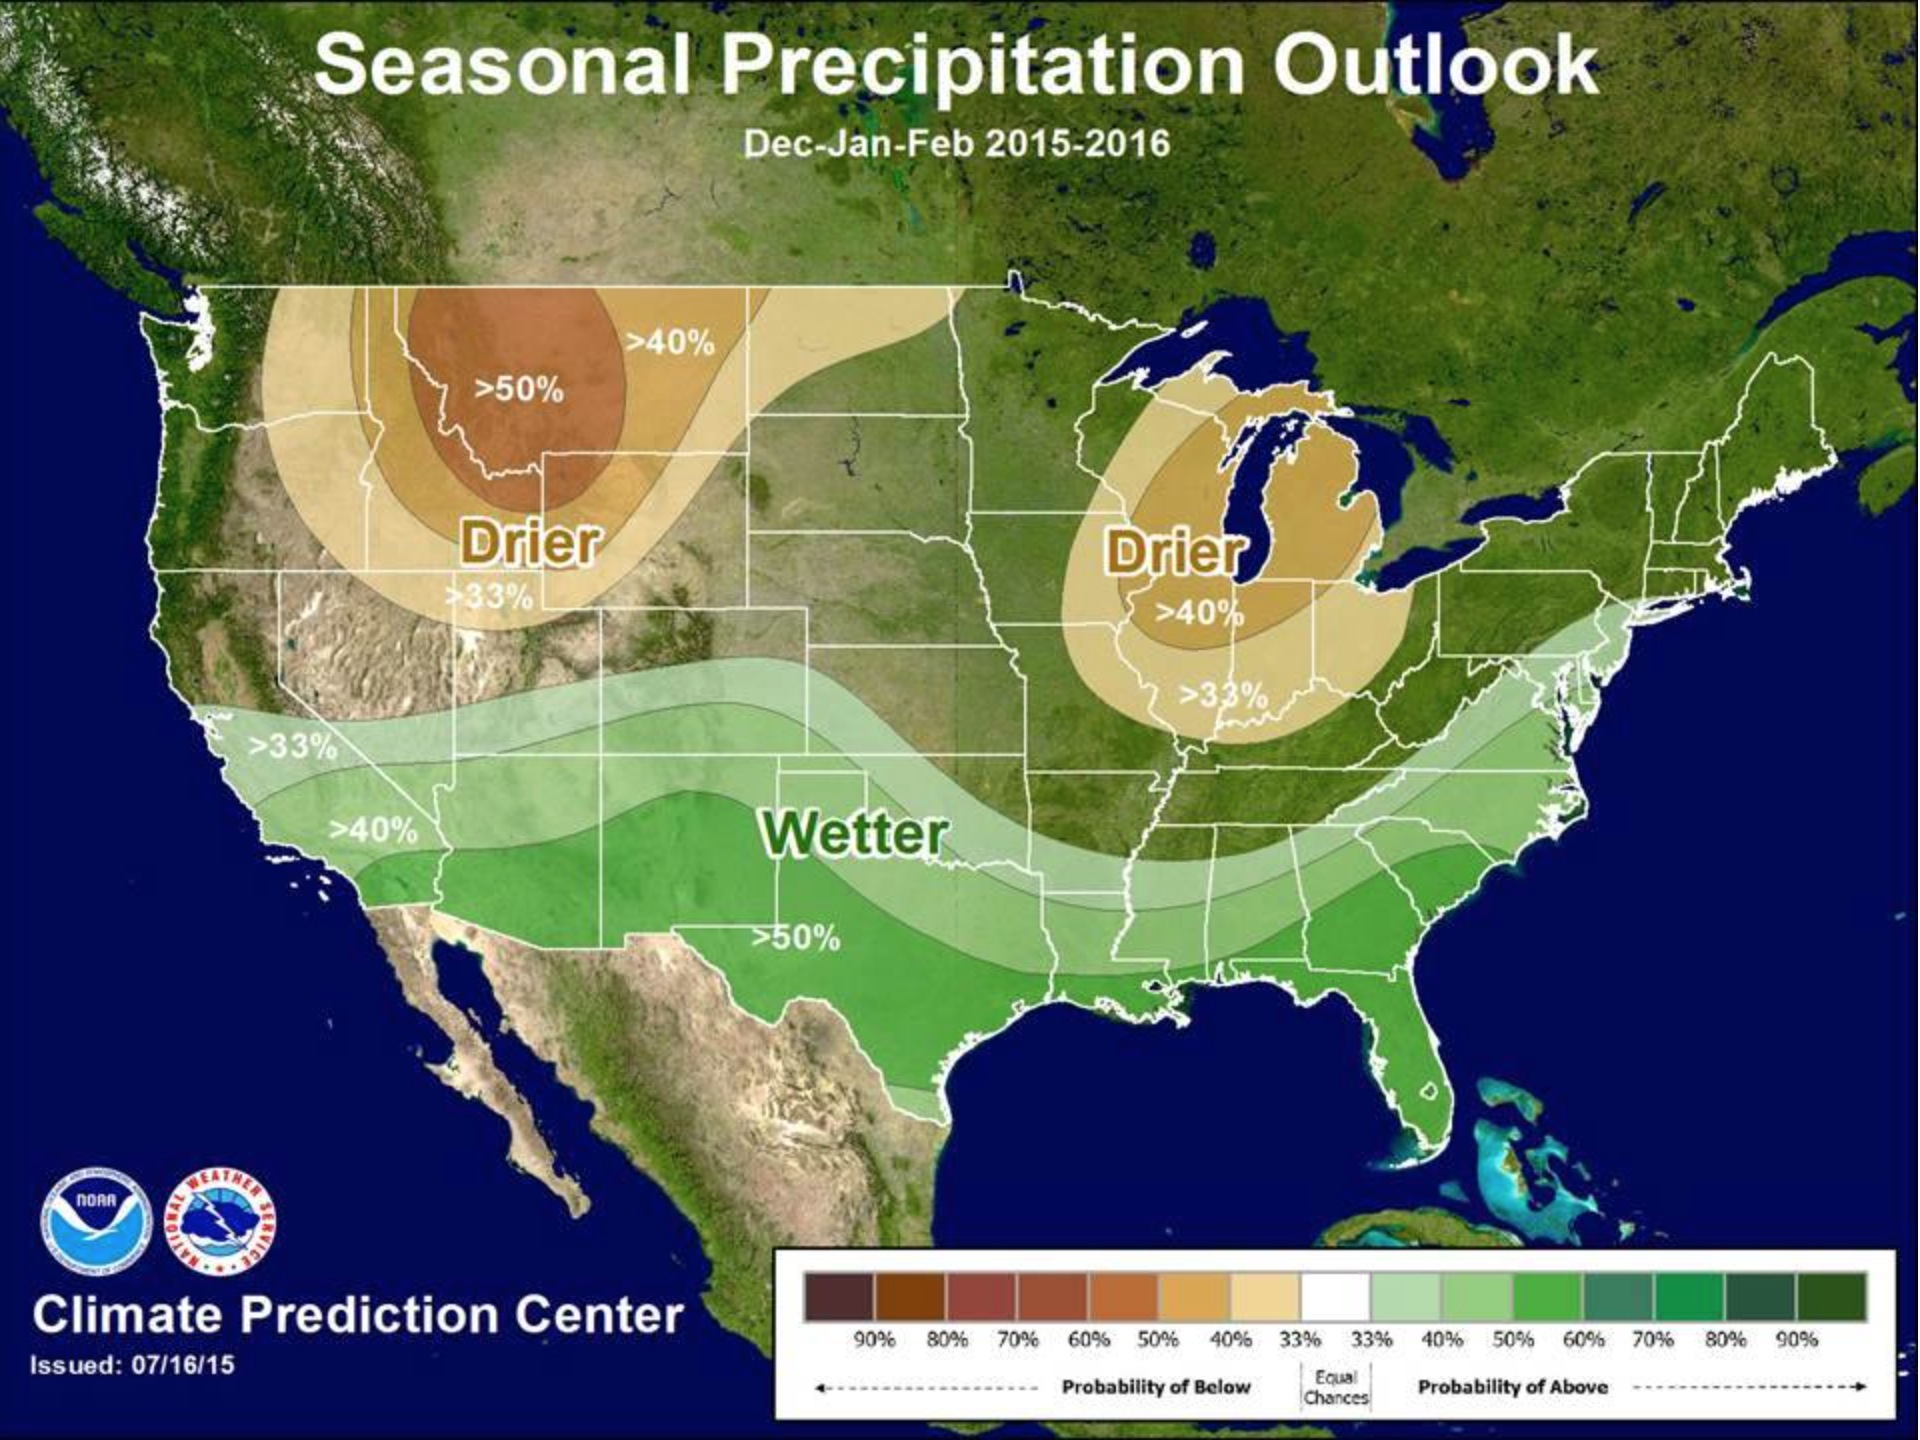 winter weather forecast could mean flood damage for San Diego CA